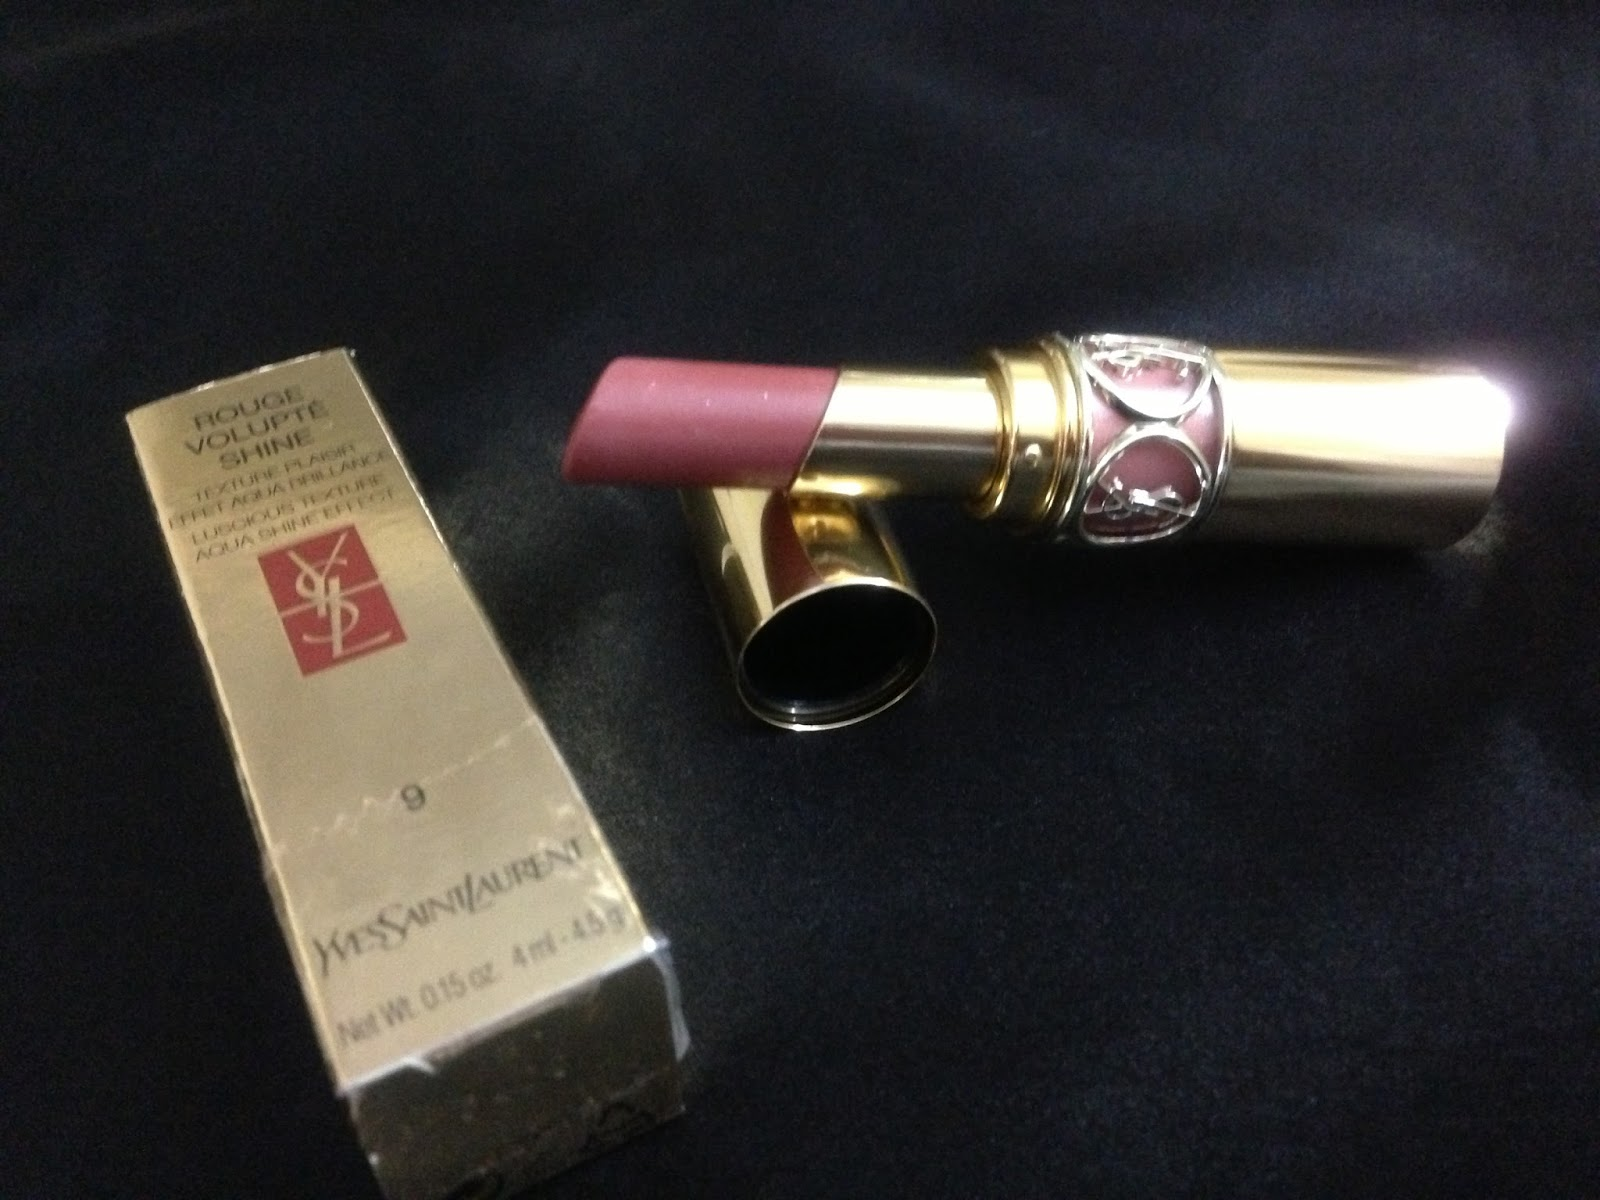 Yves Saint Laurent Rouge Volupte Shine, No.9 Nude In